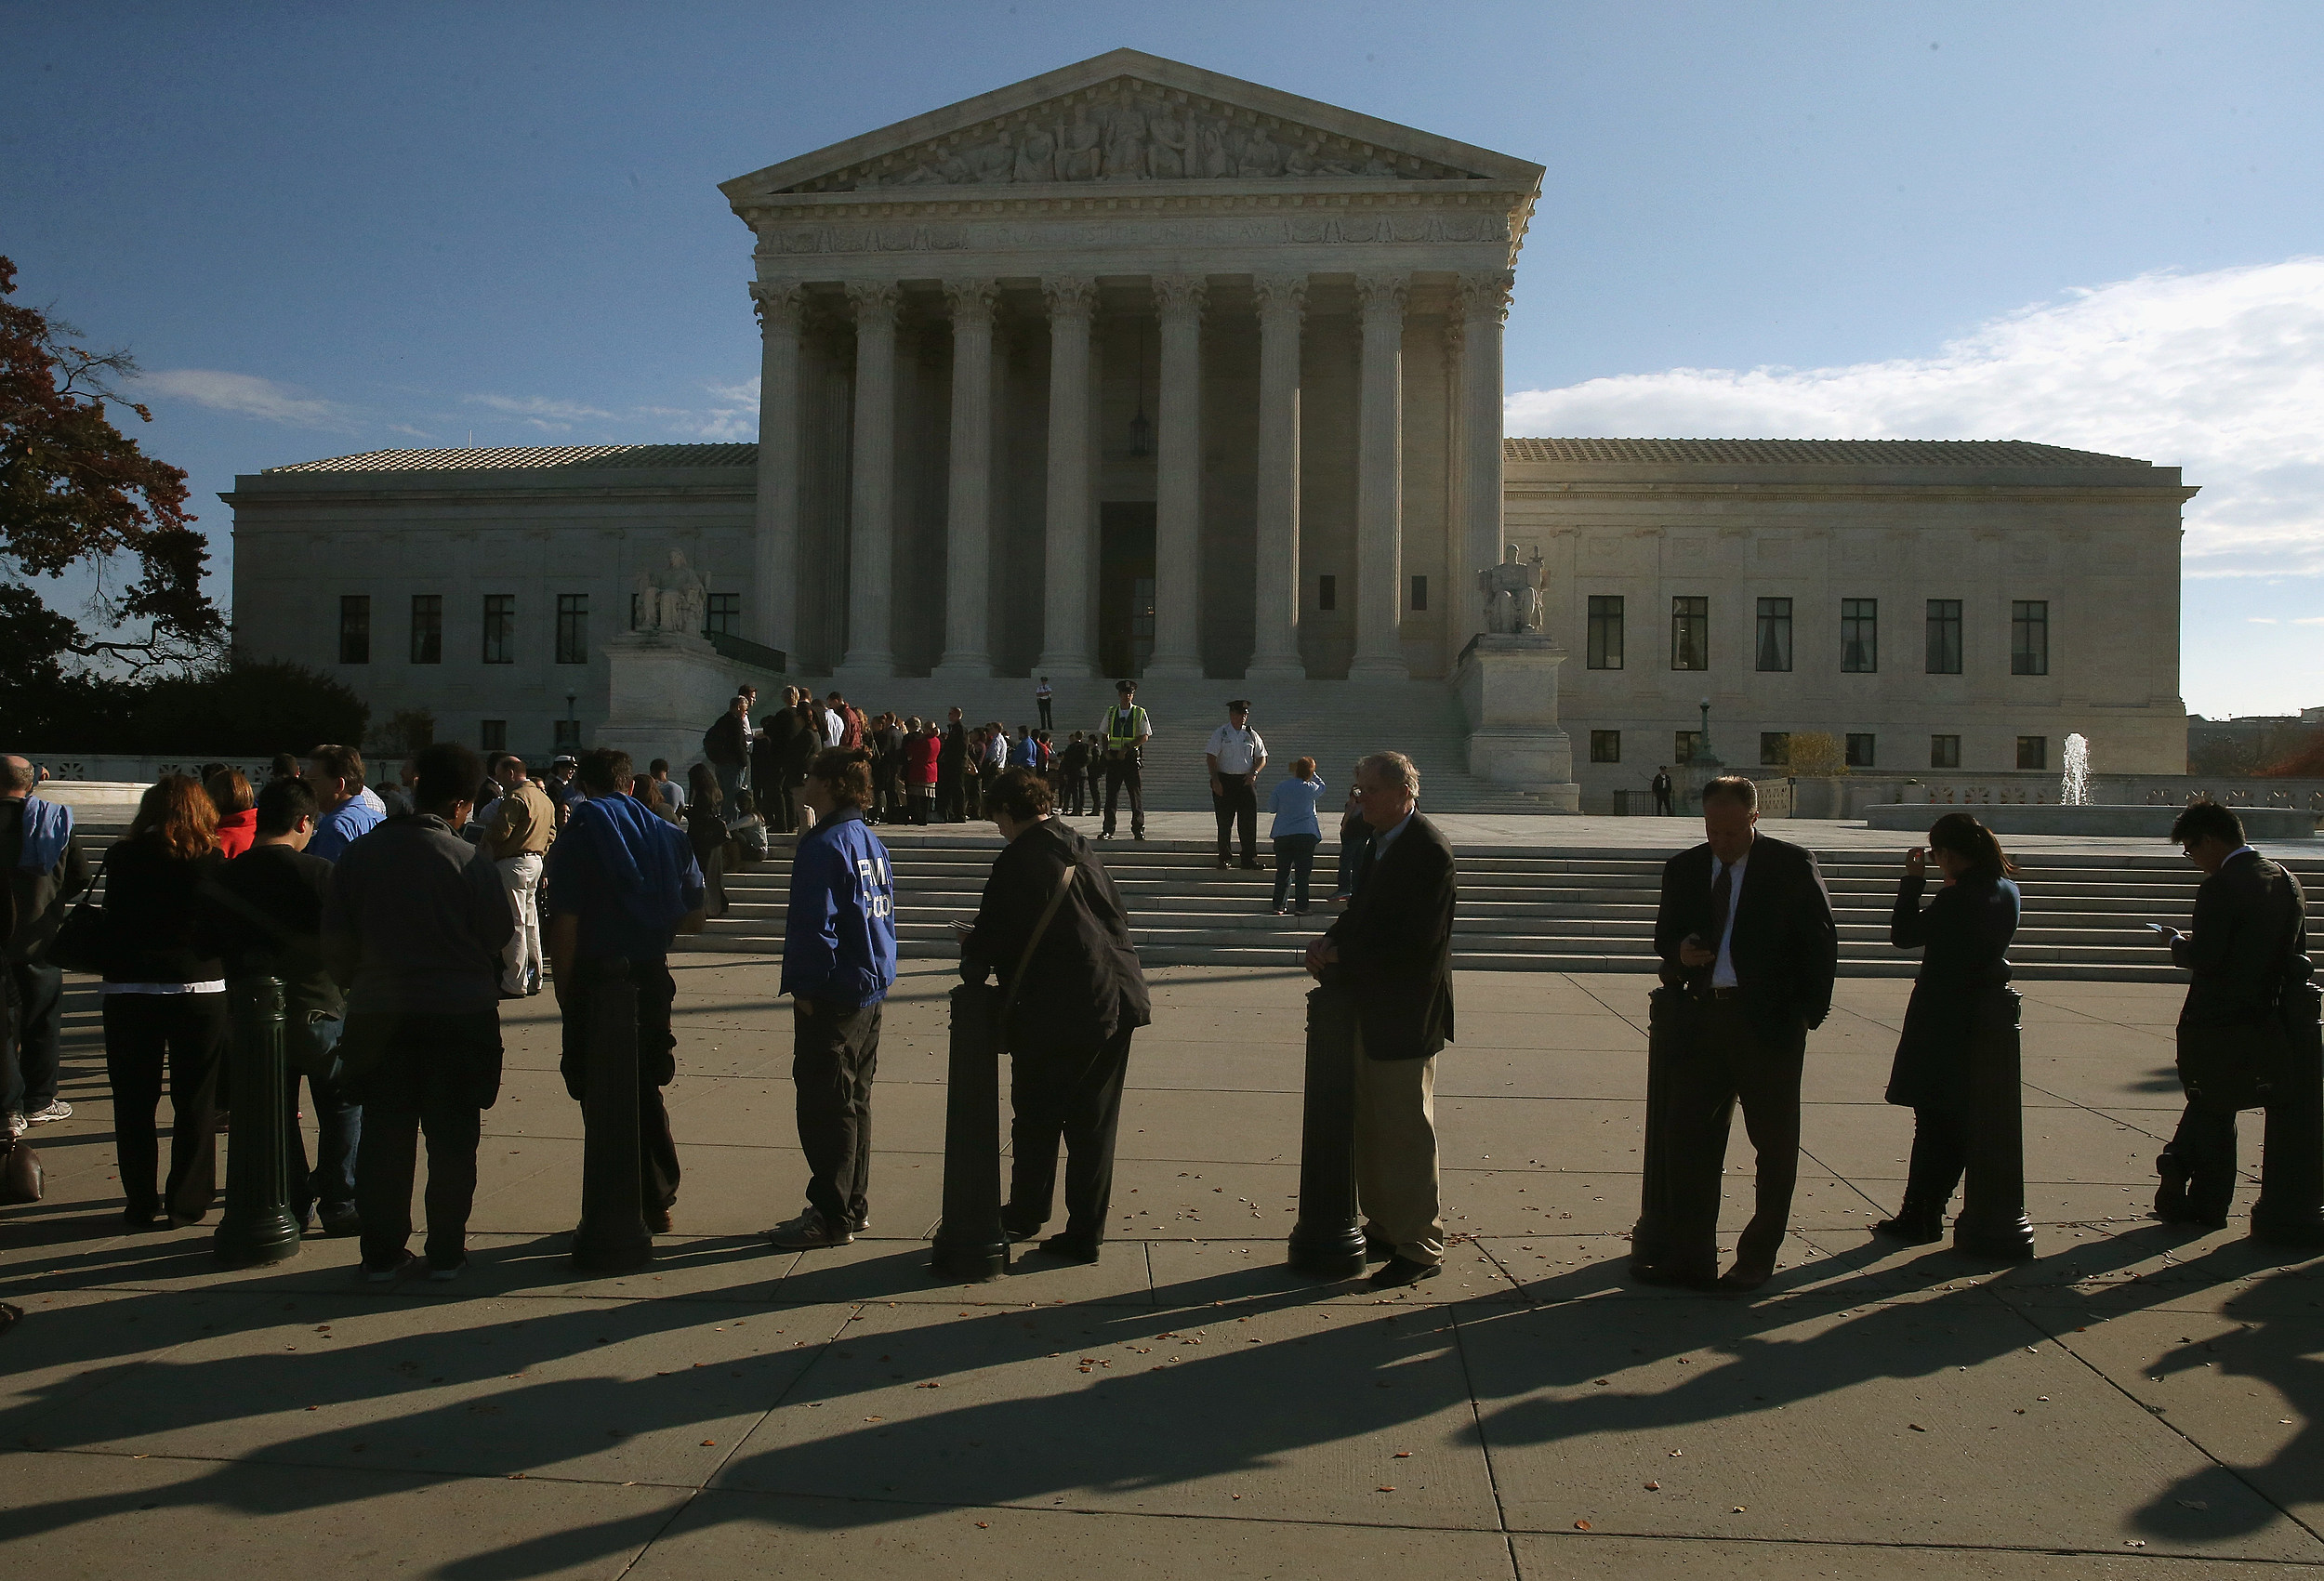 Gerrymandering Opponents Get Mixed Reception at Supreme Court